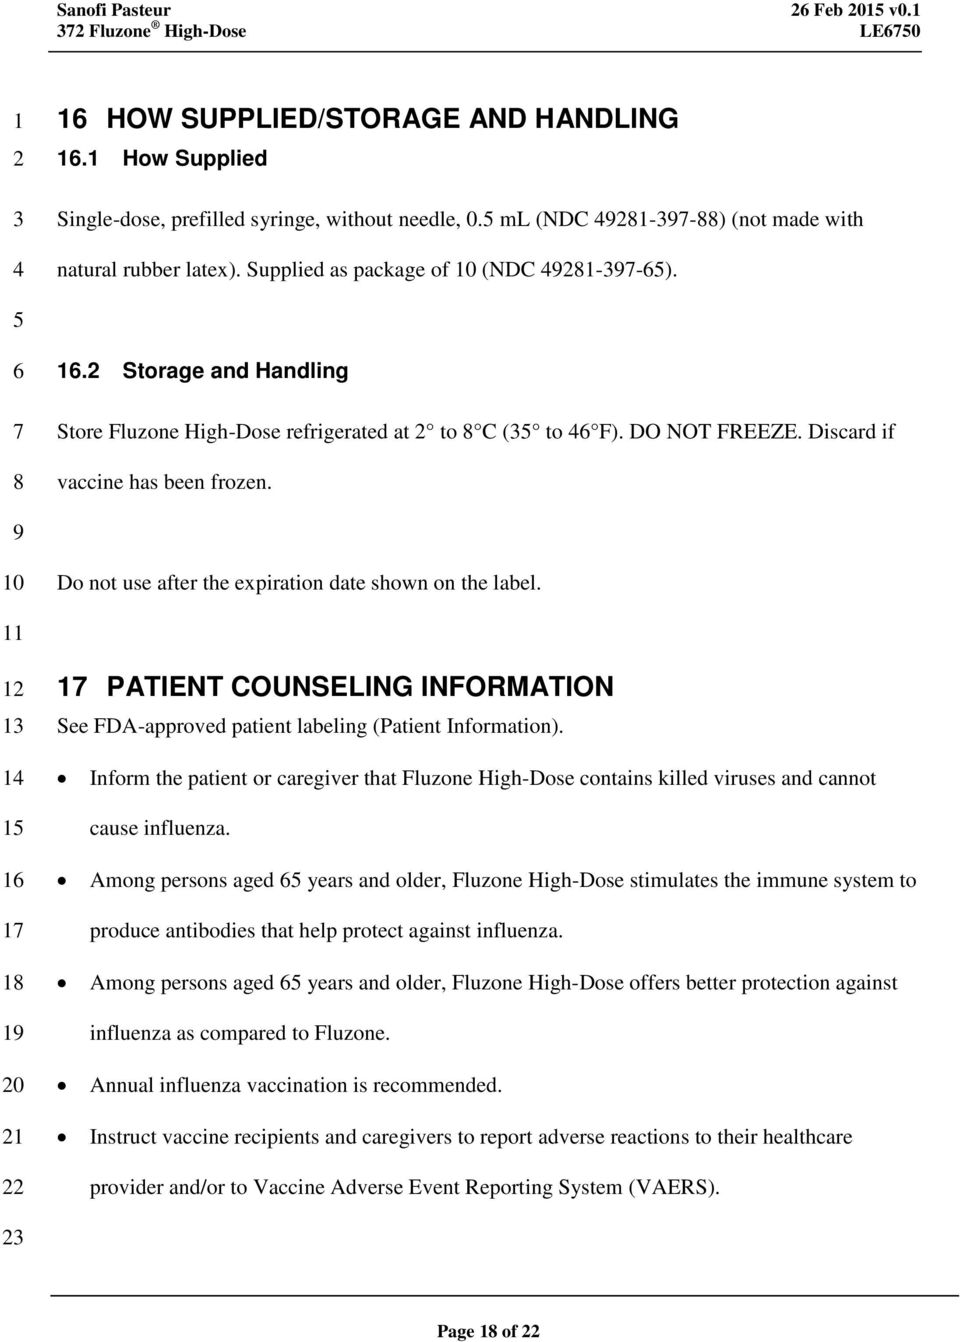 0 PATIENT COUNSELING INFORMATION See FDA-approved patient labeling (Patient Information). Inform the patient or caregiver that Fluzone High-Dose contains killed viruses and cannot cause influenza.